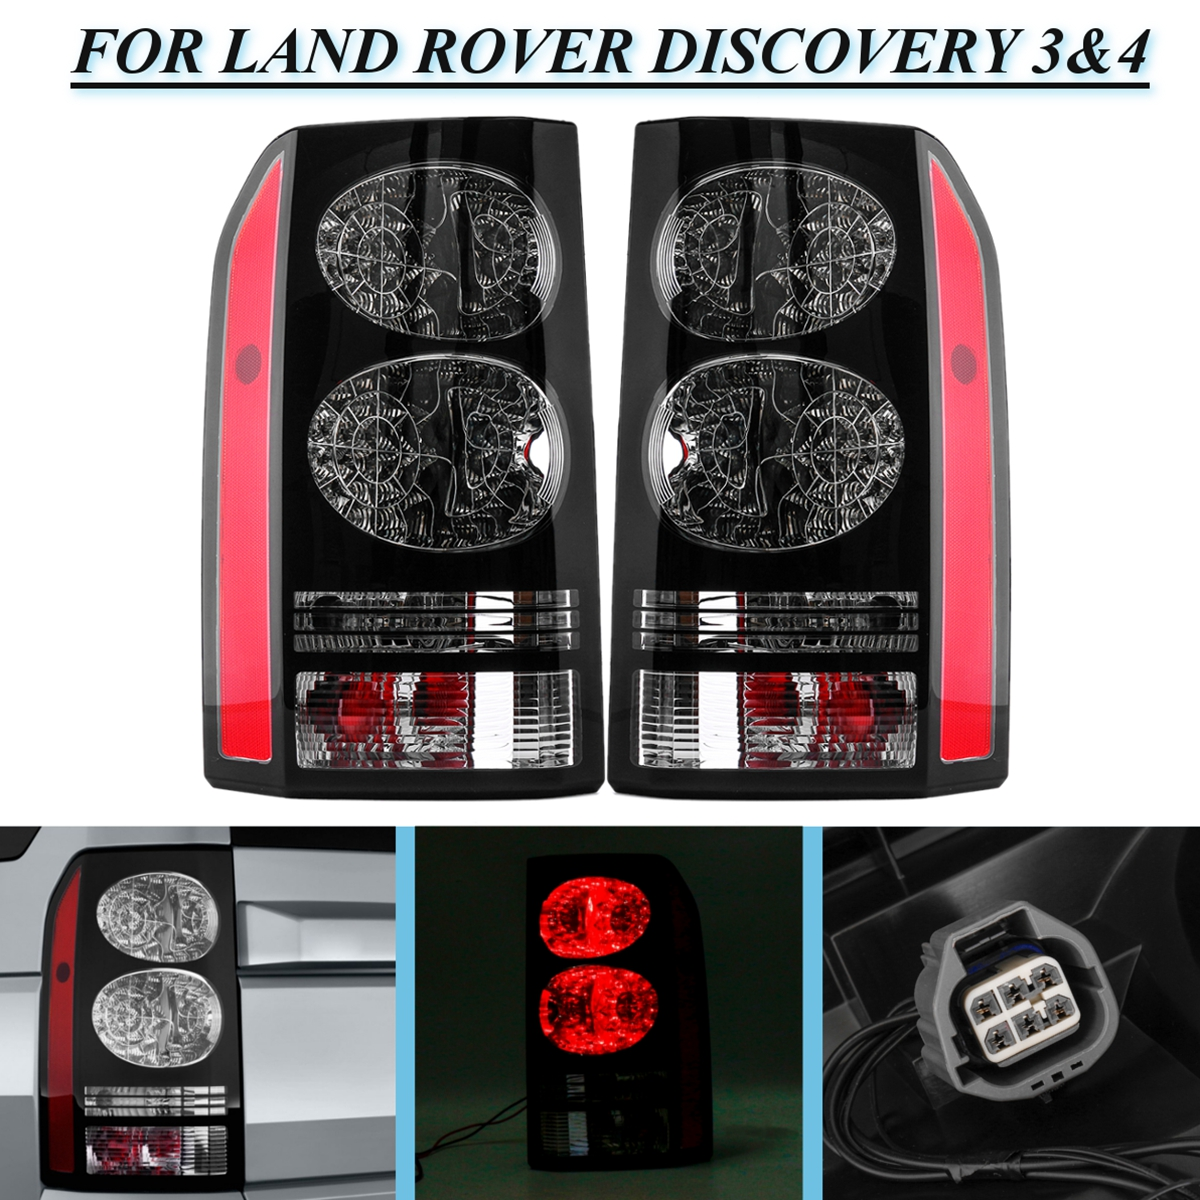 for LAND ROVER DISCOVERY 3&4 04~14 2pcs Rear Car Styling Head Taillight Tail Light Lamp Brake Lights Bumper Reflector Stop Light rear brake light tail light stop light taillight warning light lamp for suzuki swift 2005 2016